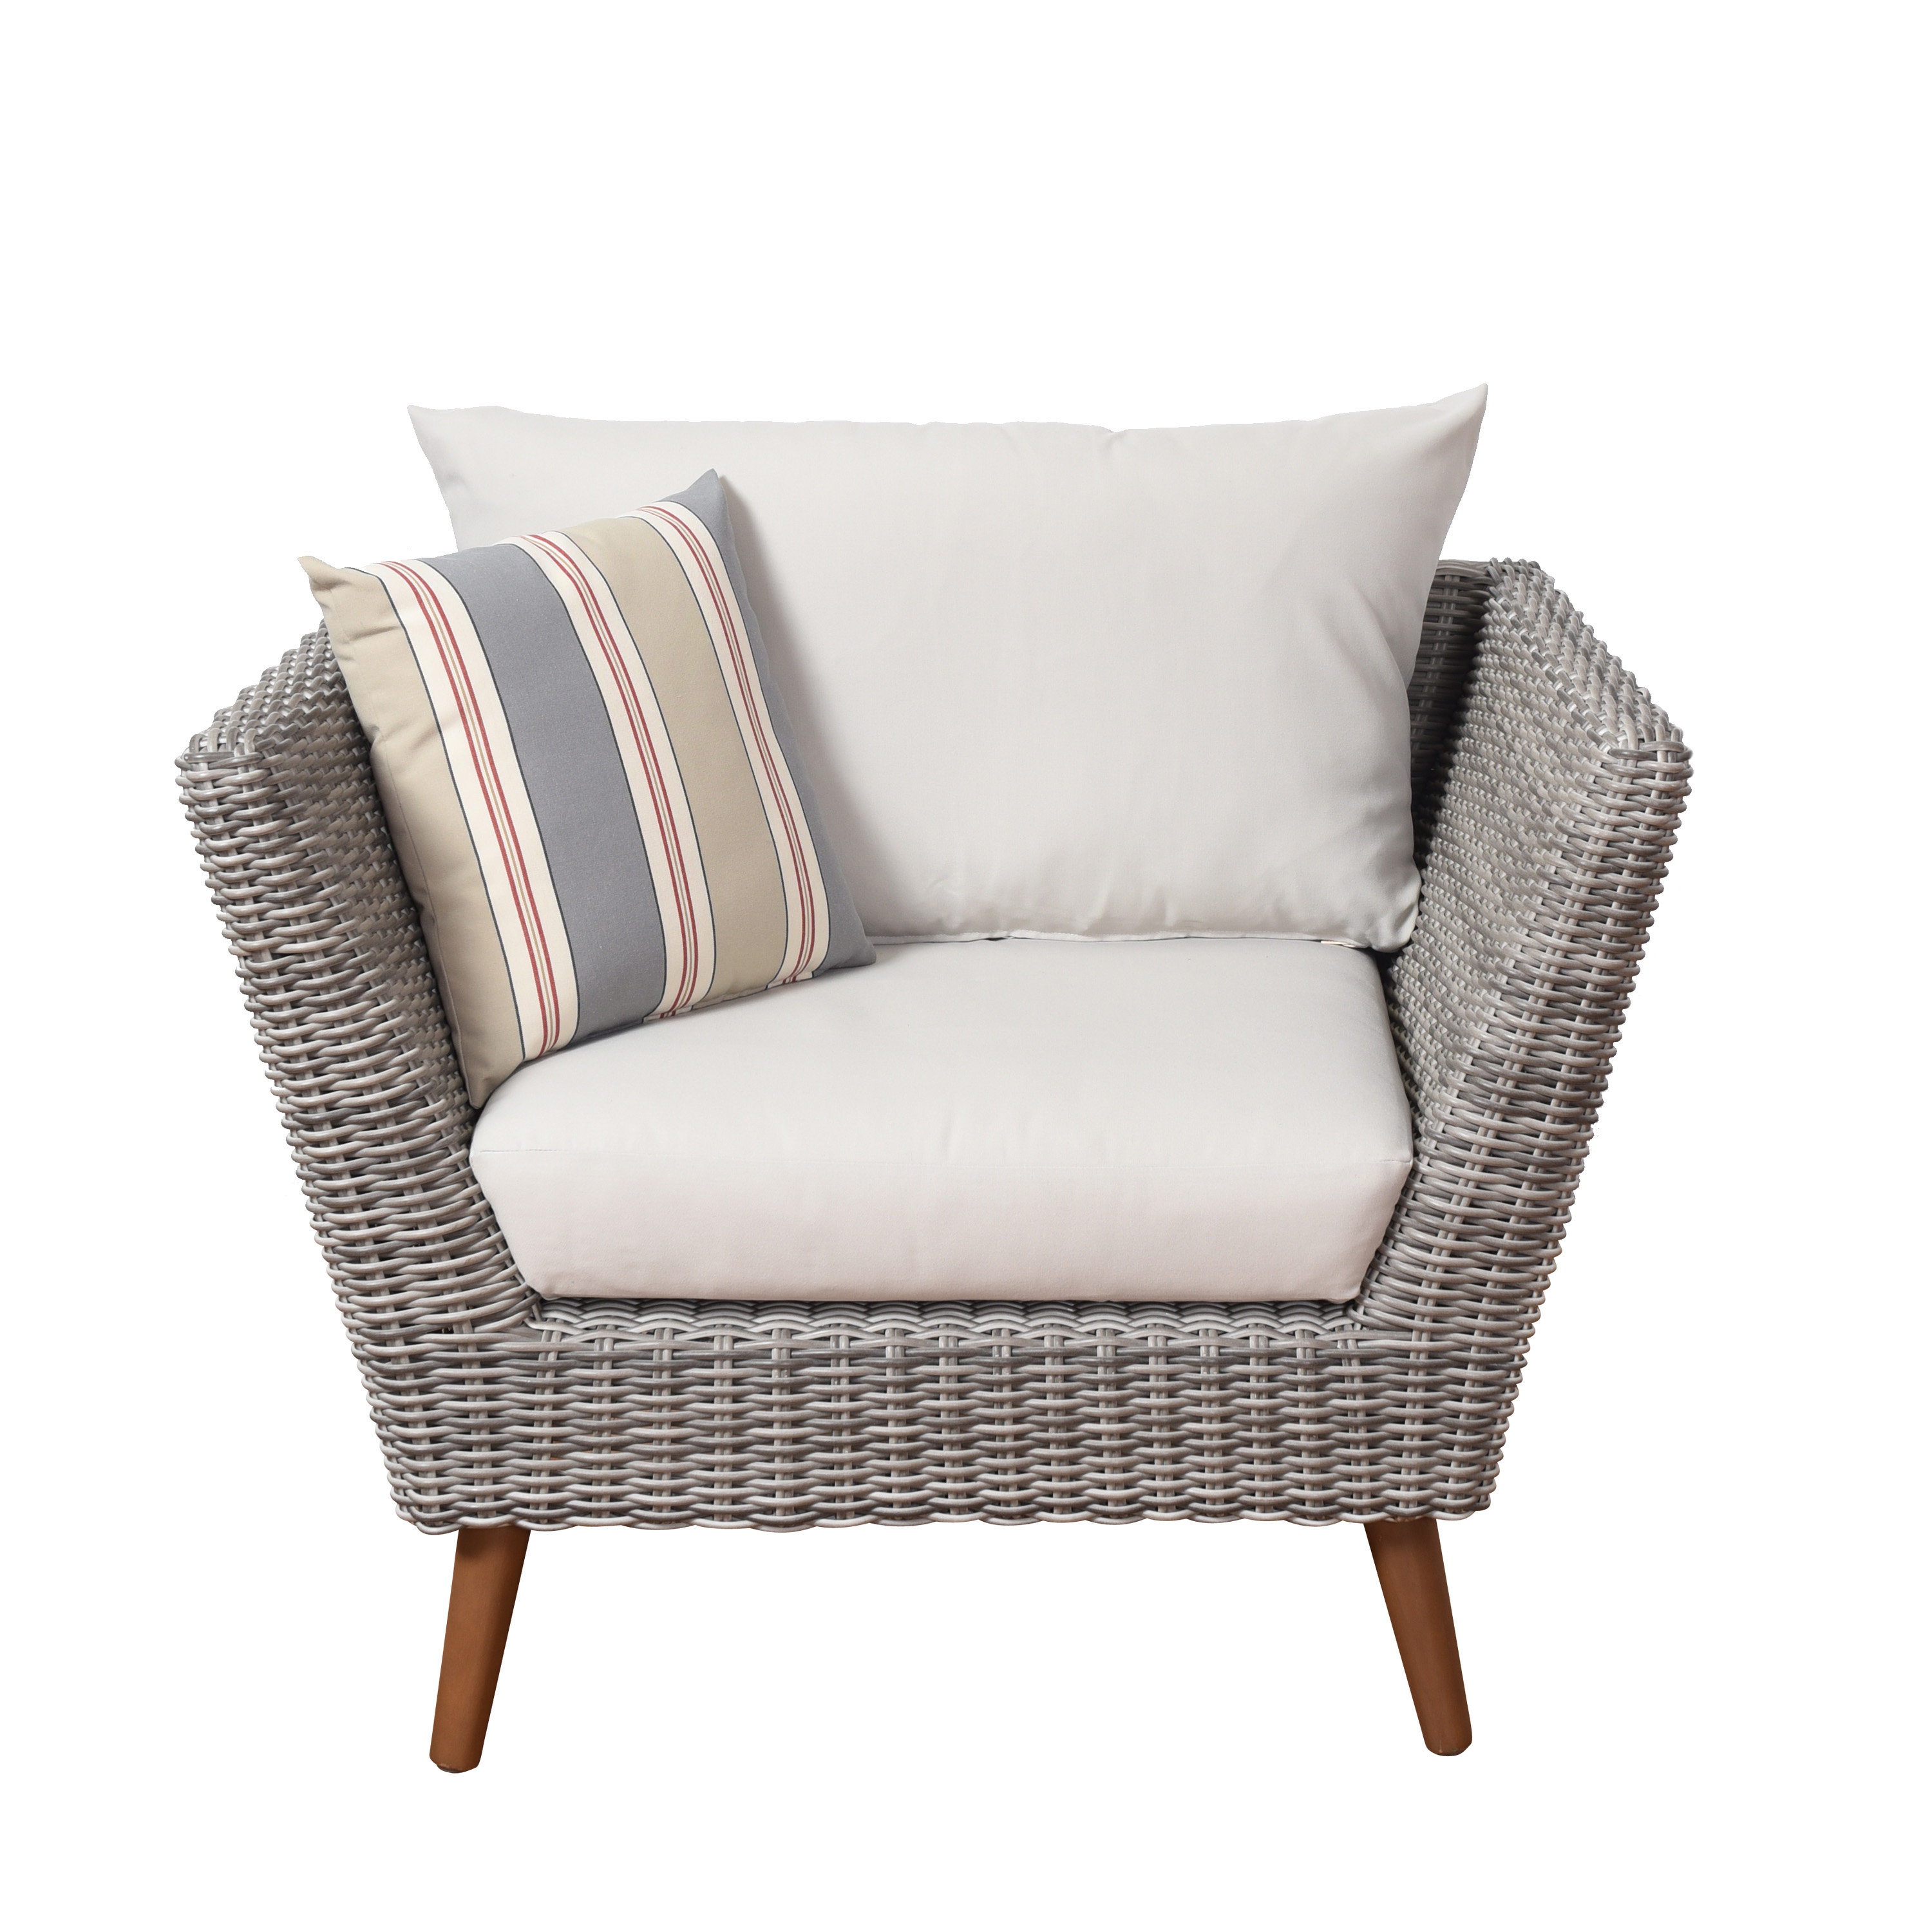 Newbury Patio Chair With Cushions Throughout Most Current Newbury Patio Sofas With Cushions (View 12 of 20)